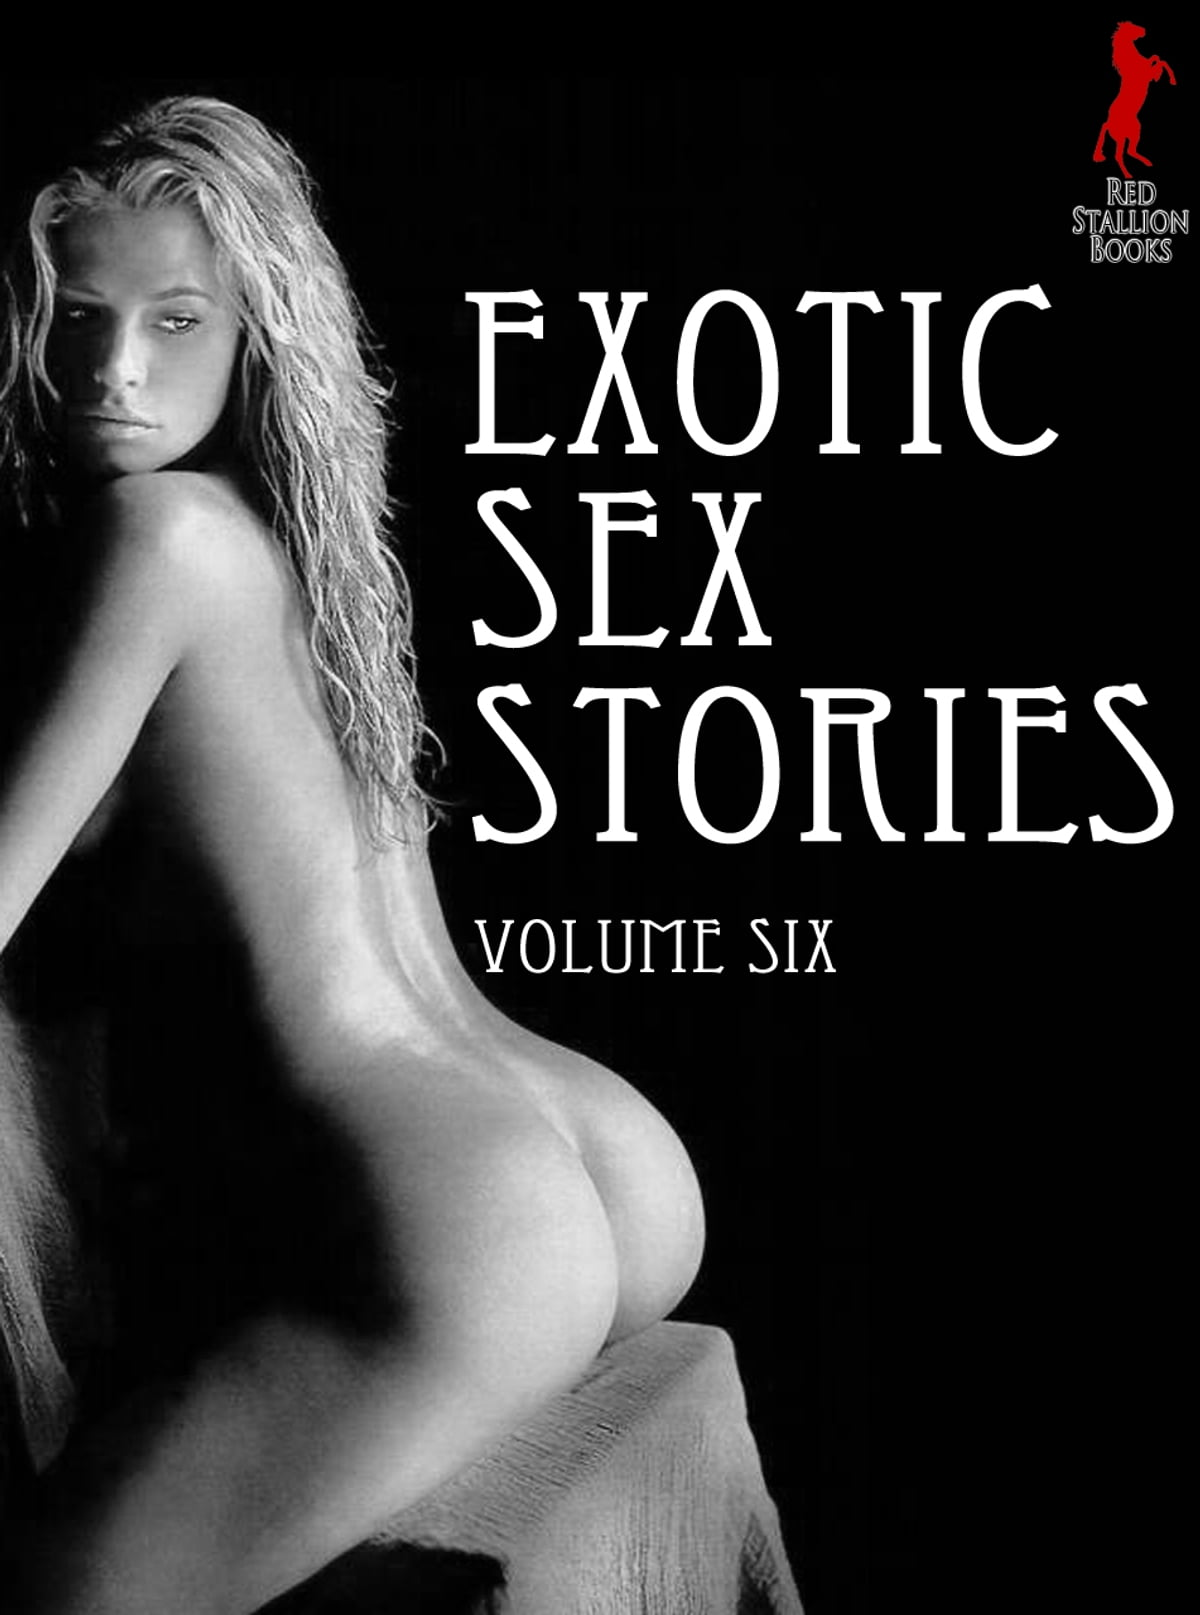 Exotic sex stories read images 500